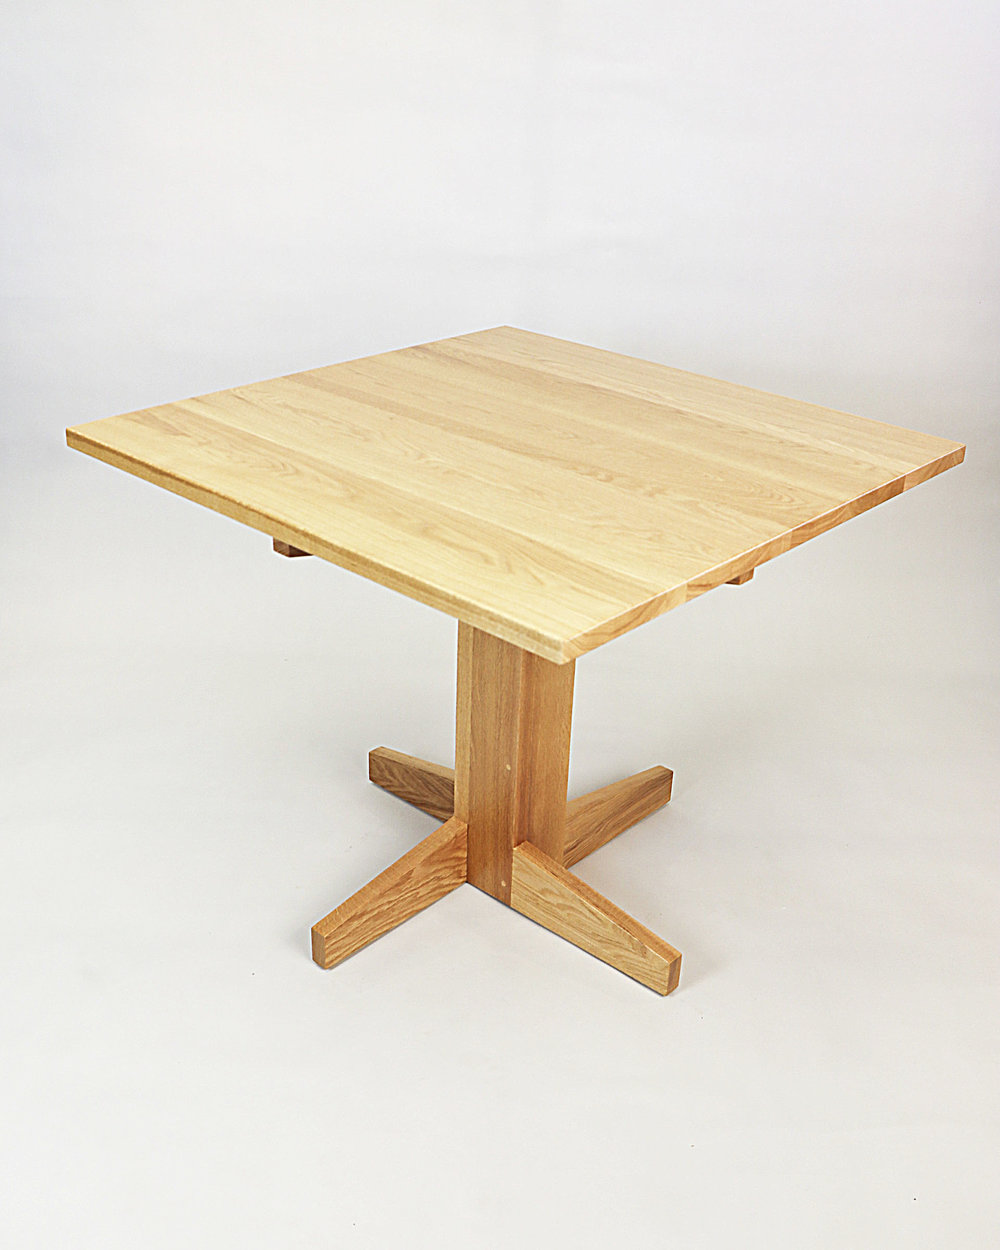 Table Minimalist1.jpg